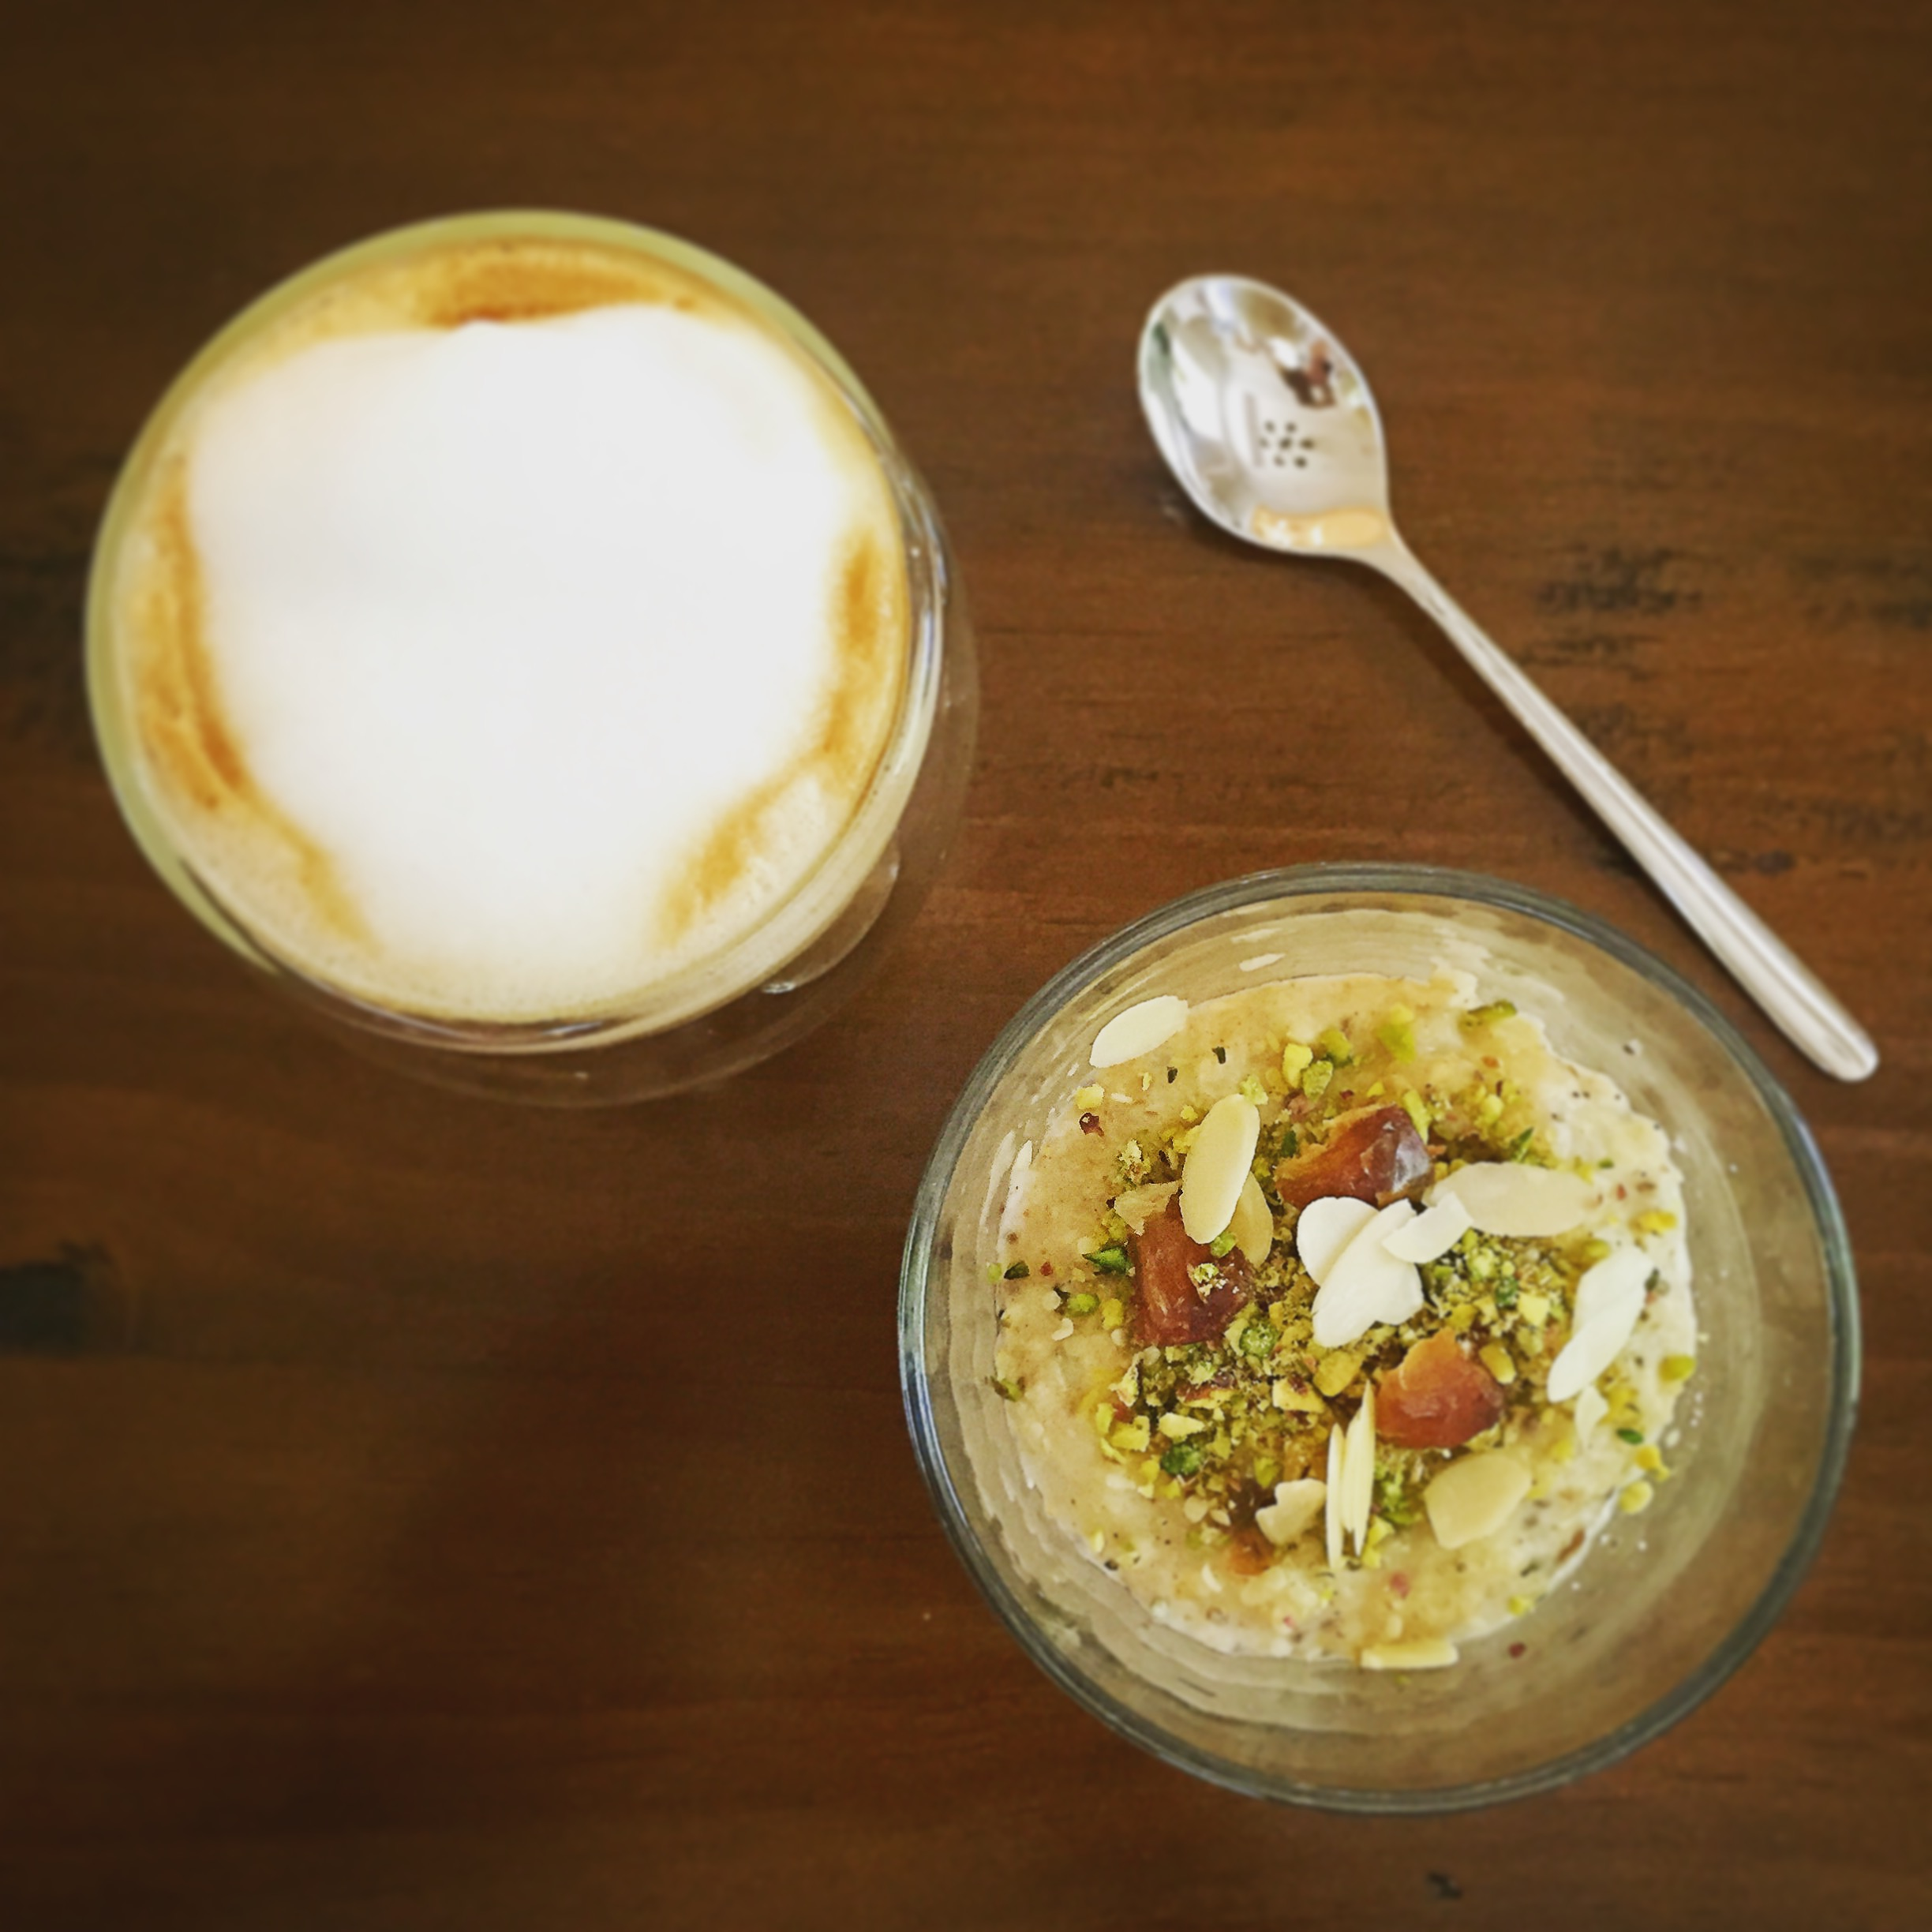 Oatmeal with dates, pistachio and cardamom